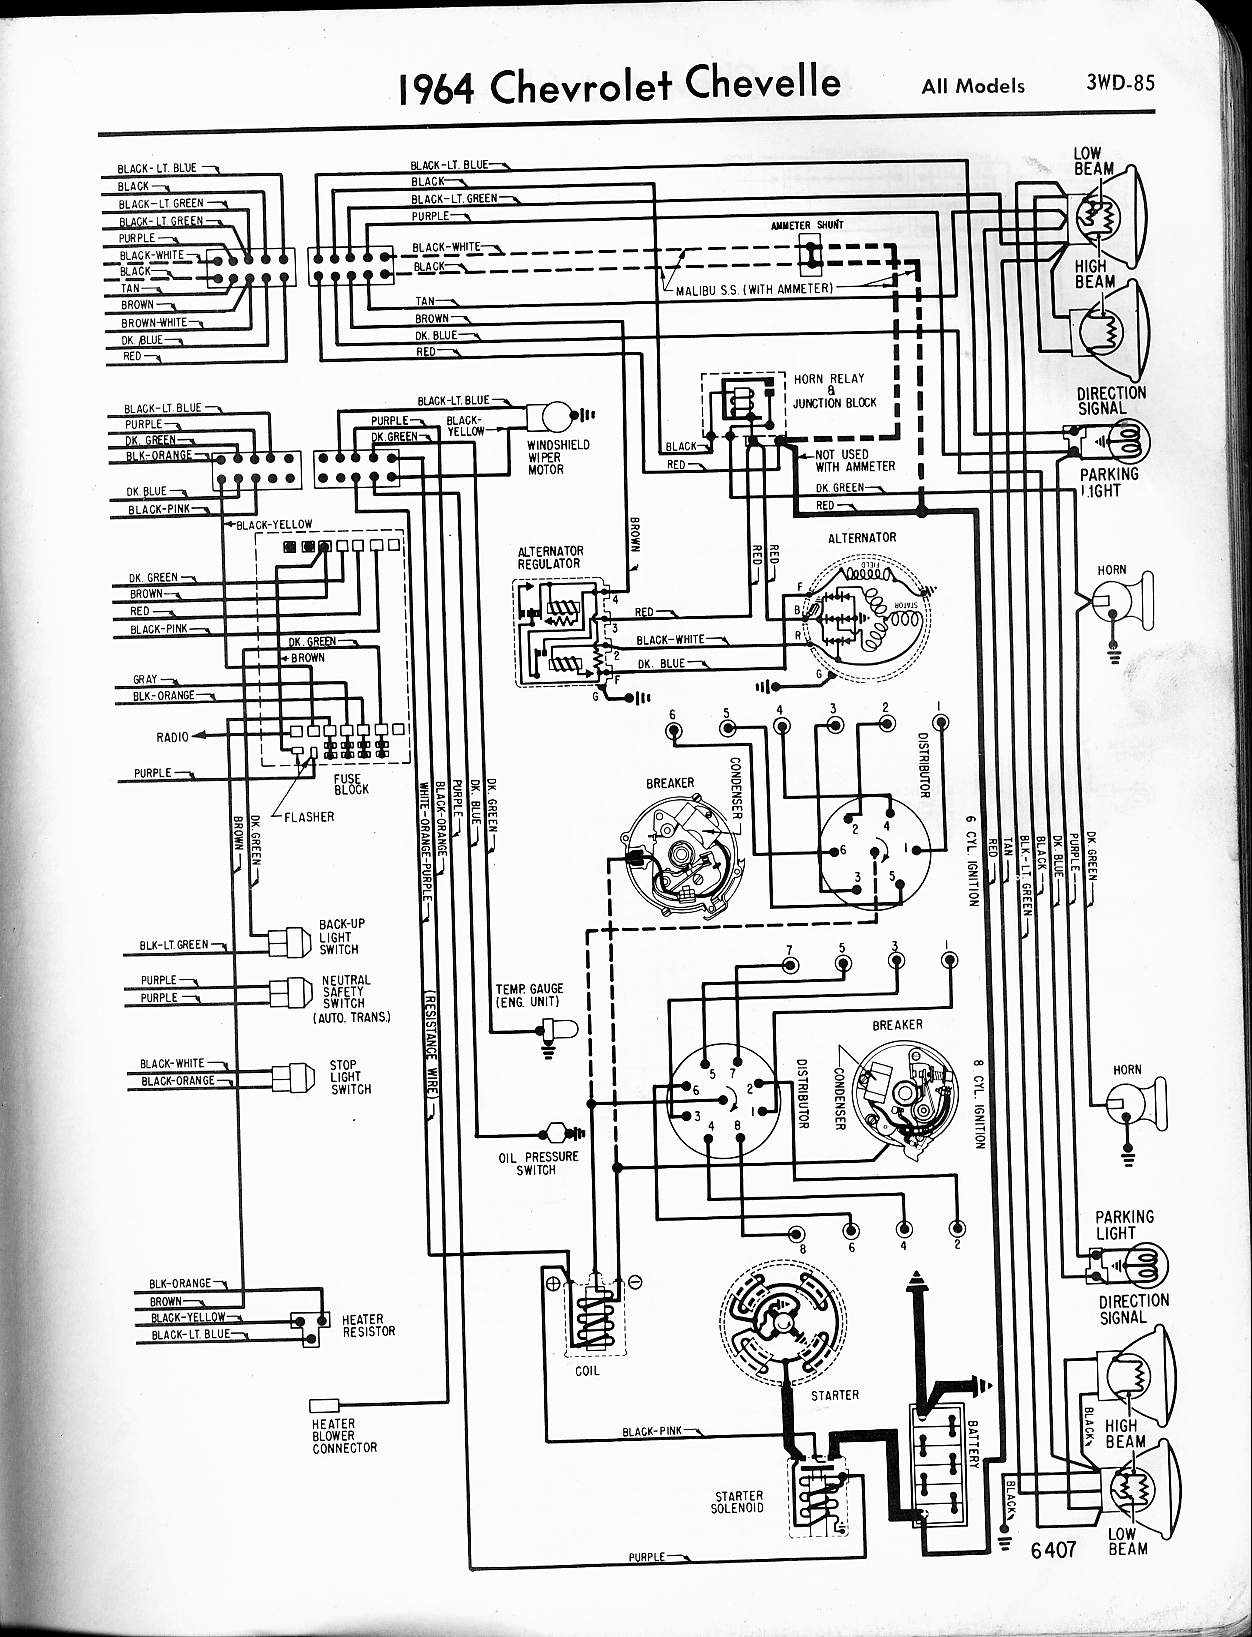 1965 Chevelle Fuse Block Diagram Best Secret Wiring 1977 Chevrolet Pickup Get Free Image About 1964 Ford Thunderbird Engine 05 Dodge Durango Box Trailer